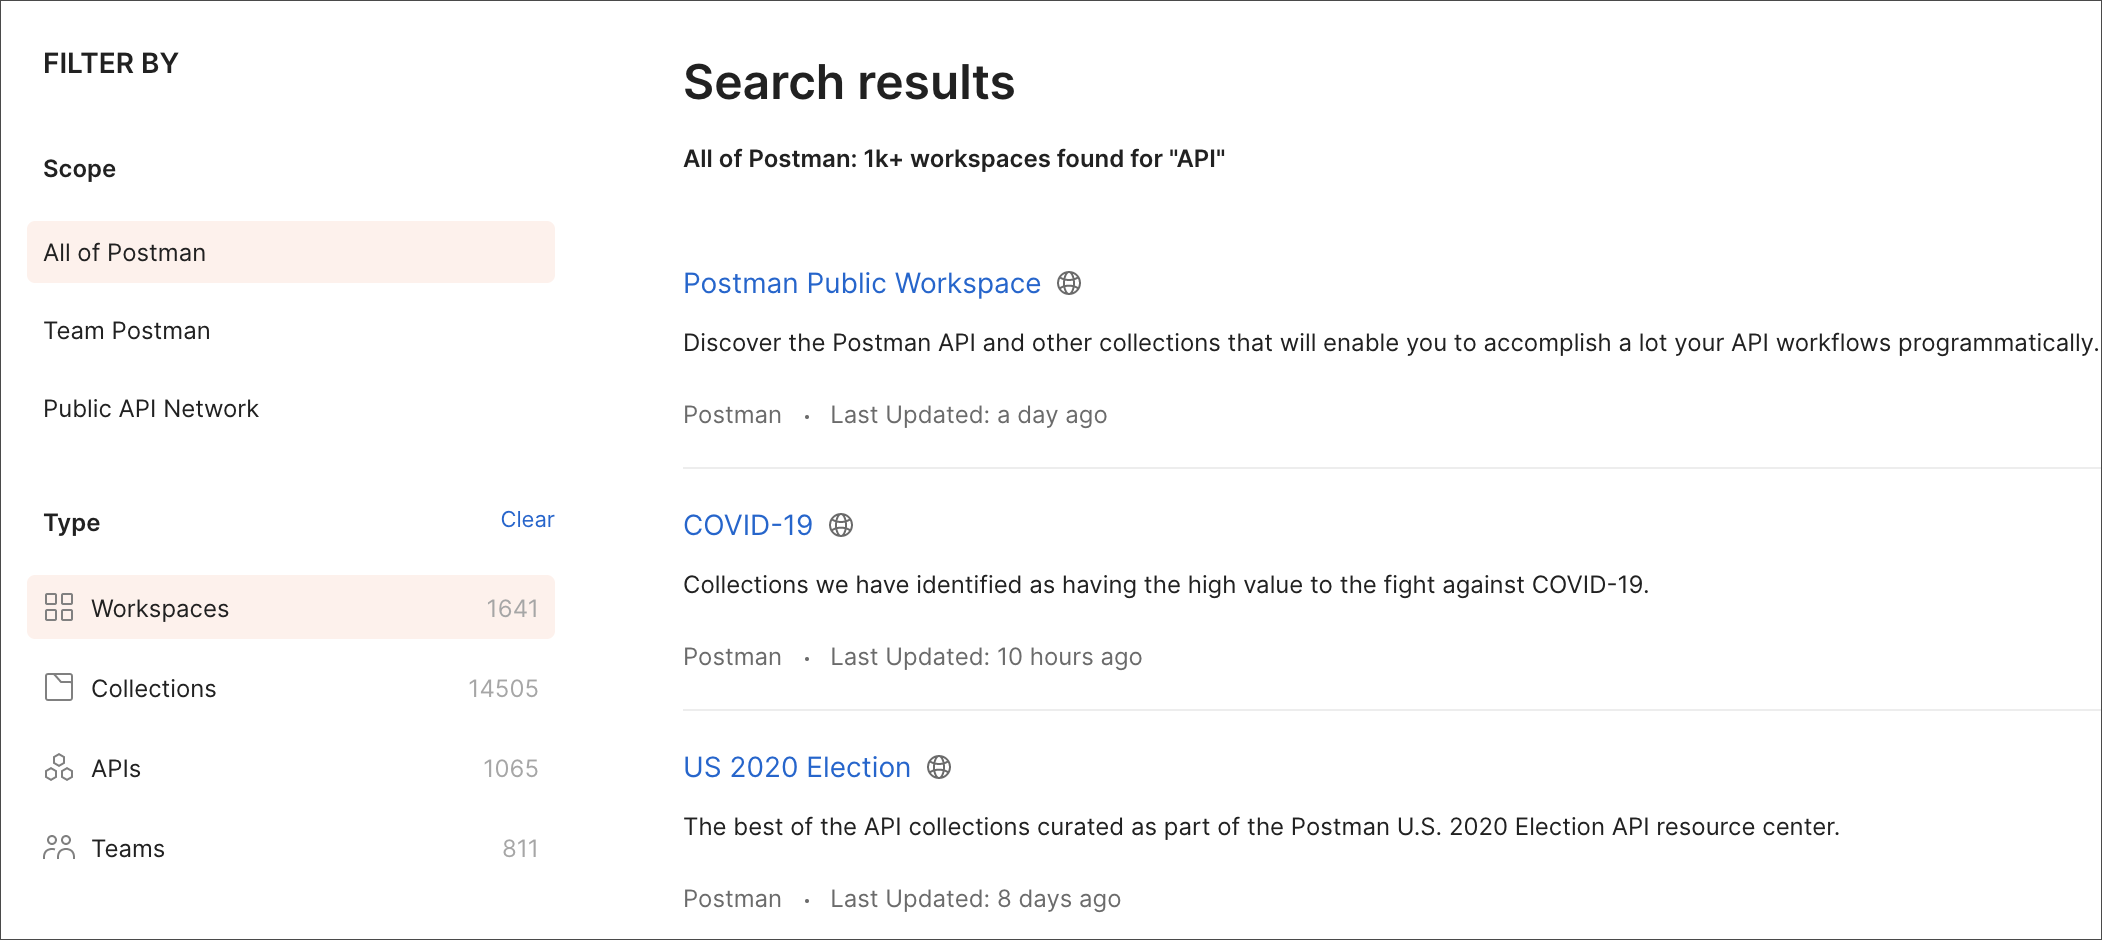 Individual workspace search results